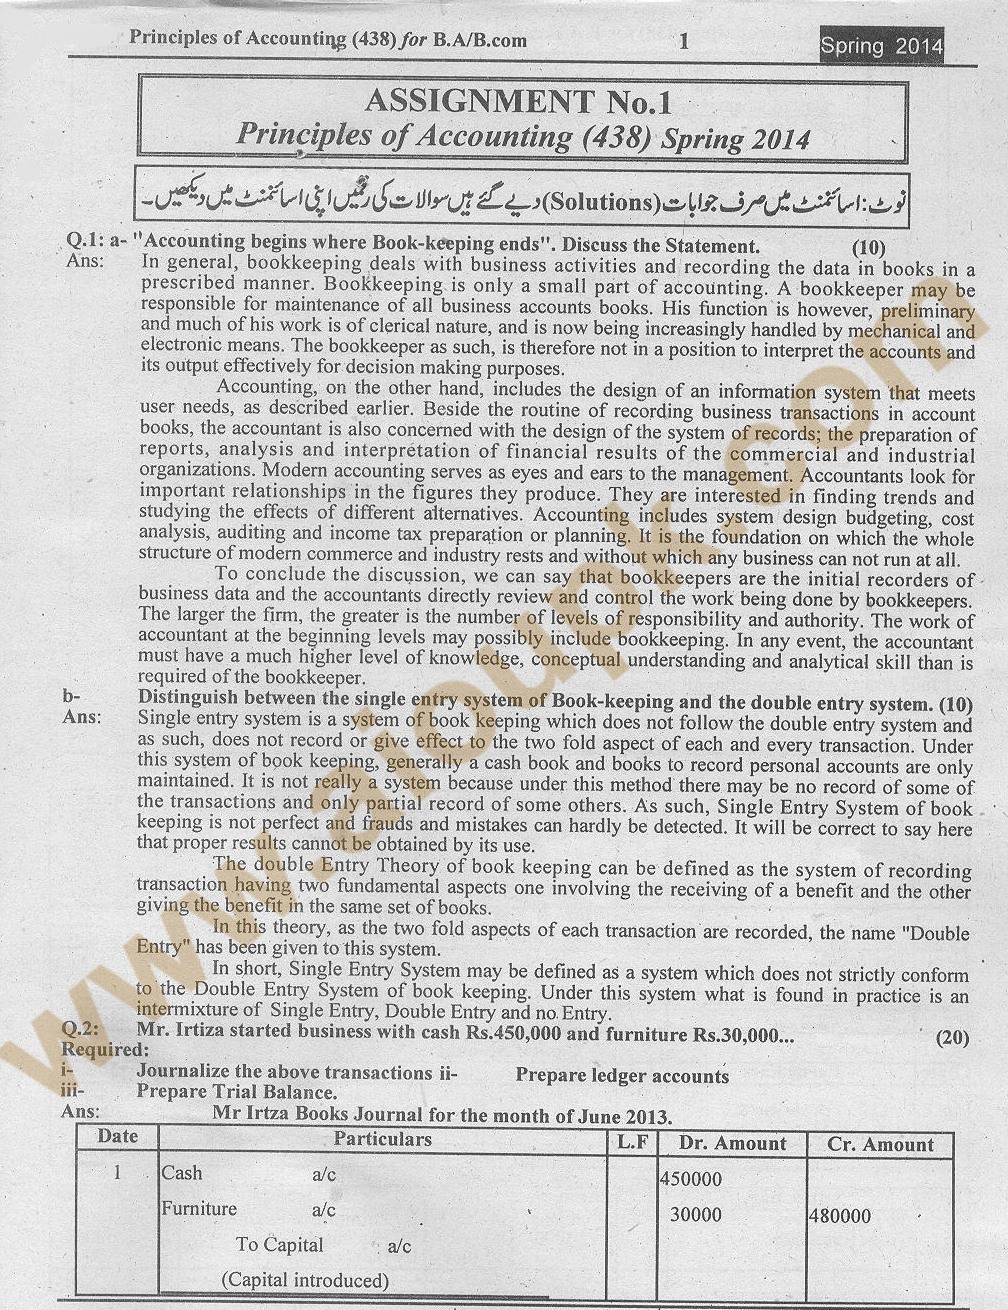 principles of accounting code solved assignments of aiou solved assignment aiou spring 2014